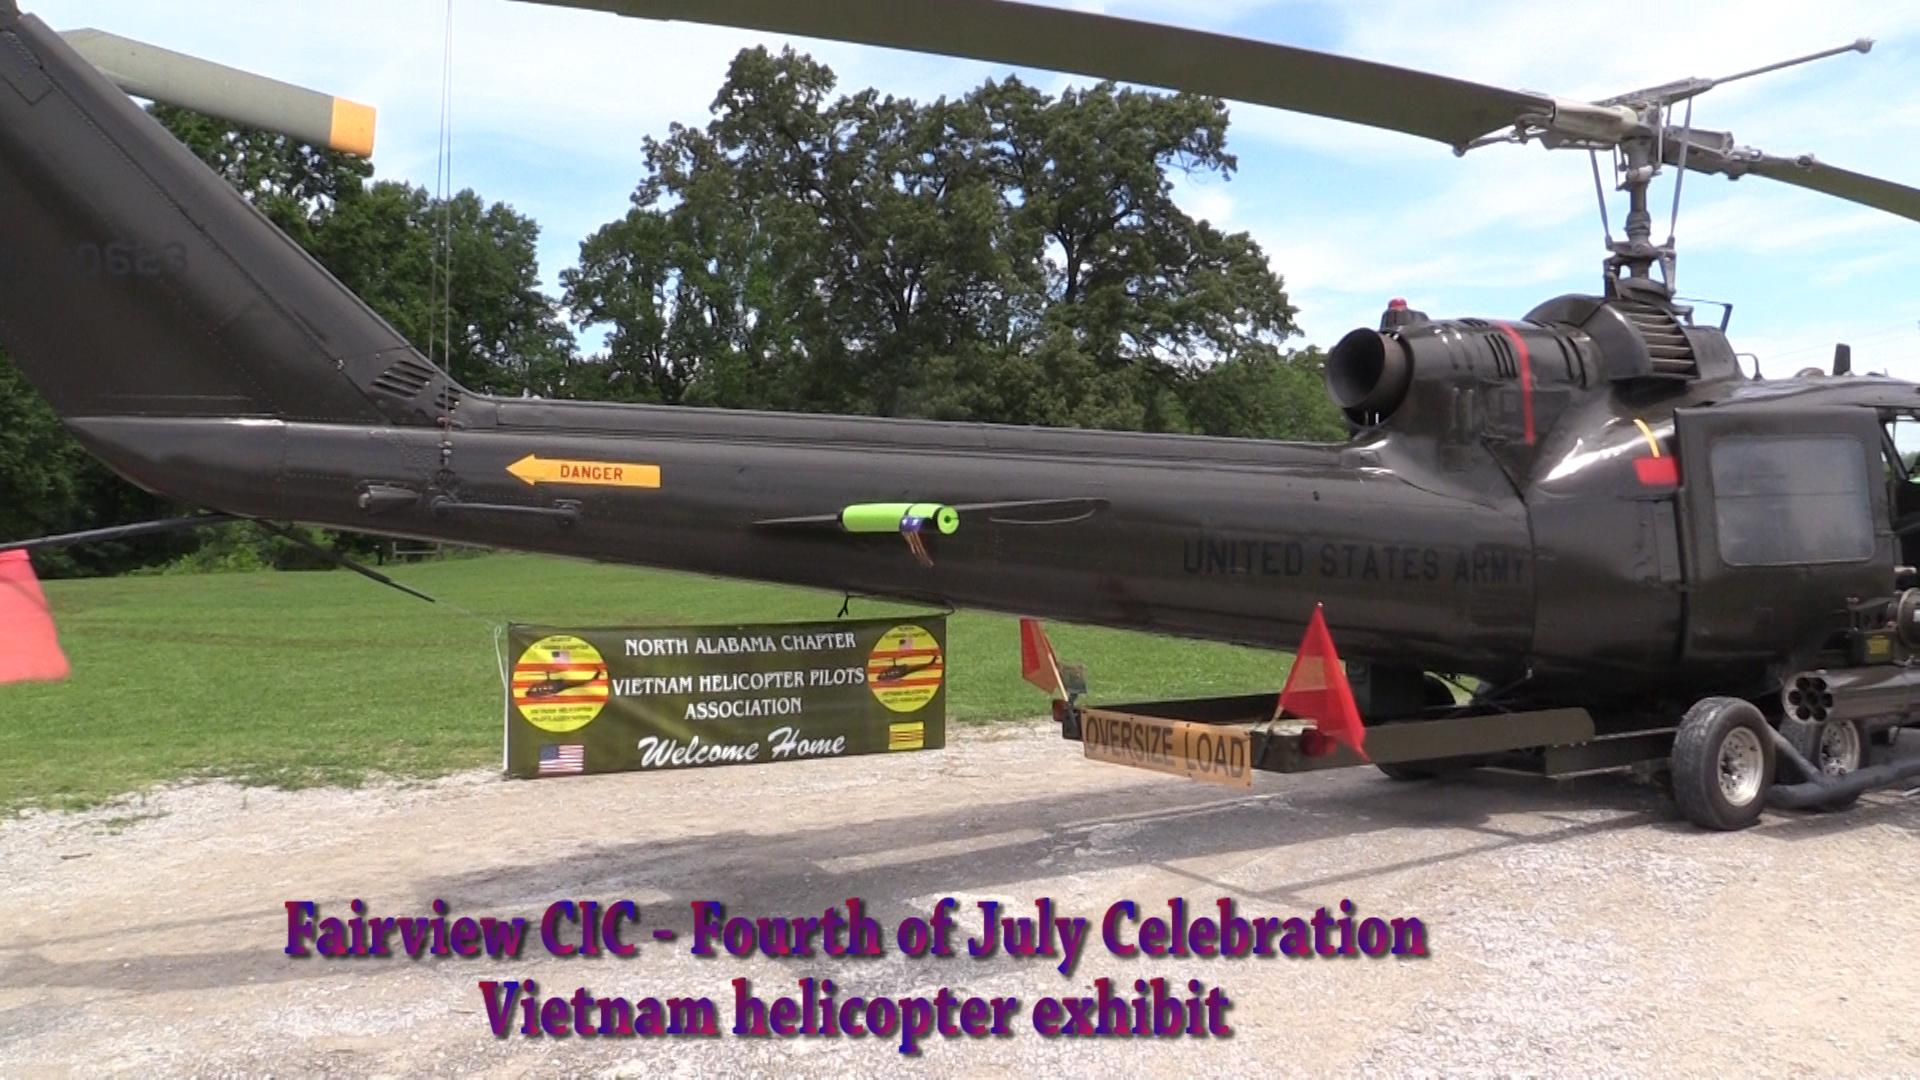 VIDEO - Fairview CIC hold helicopter exhibit